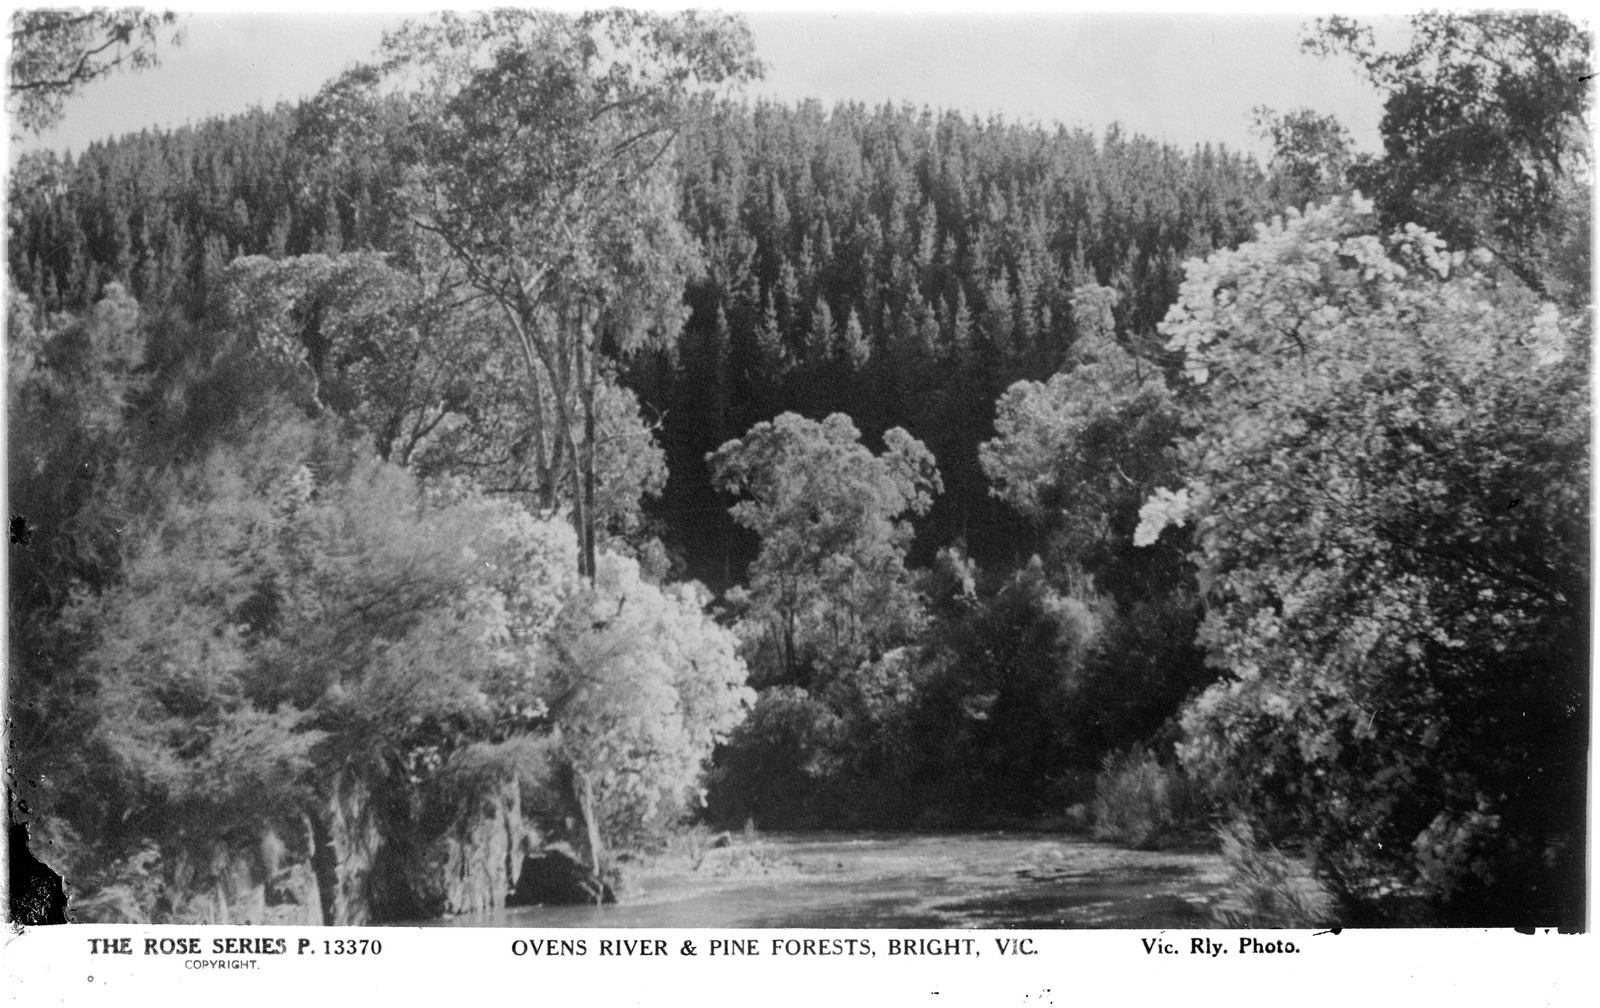 Ovens river and pine forest